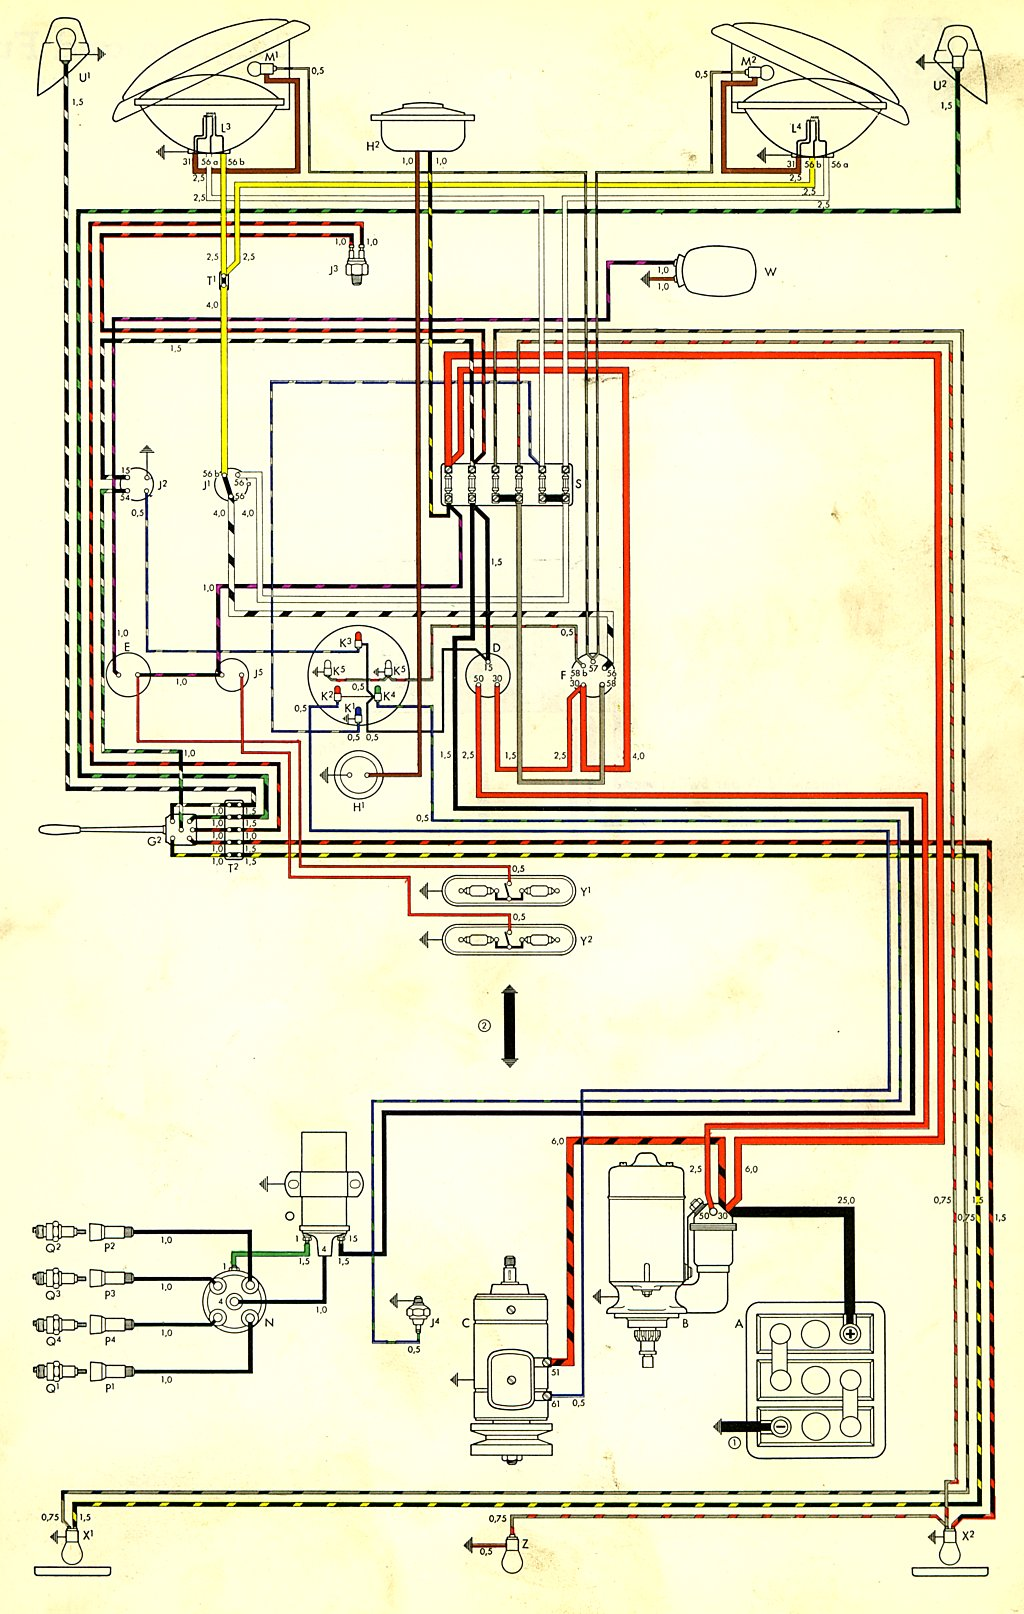 bus_59_USA thesamba com type 2 wiring diagrams vw wiring diagram at gsmportal.co